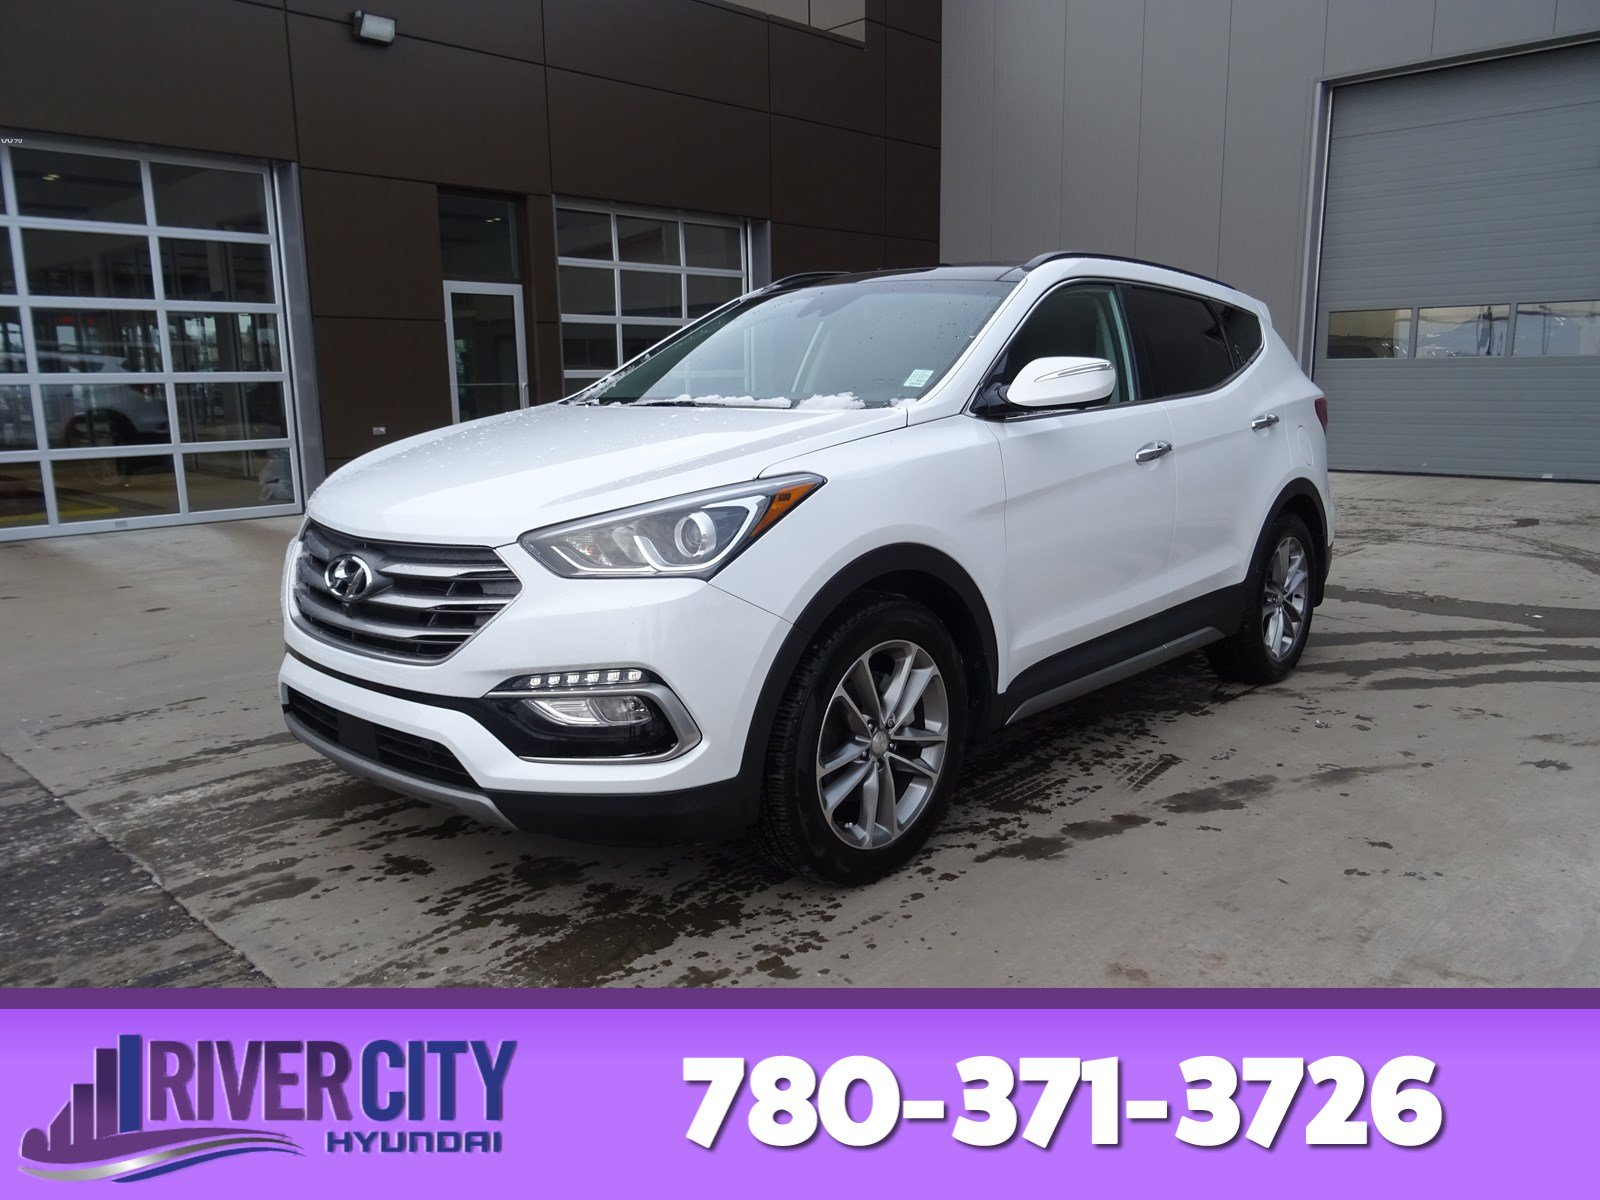 Pre Owned 2017 Hyundai Santa Fe Sport Awd Ultimate Navigation Gps Leather Heated Seats Panoramic Roof Back Up Cam Bluetooth